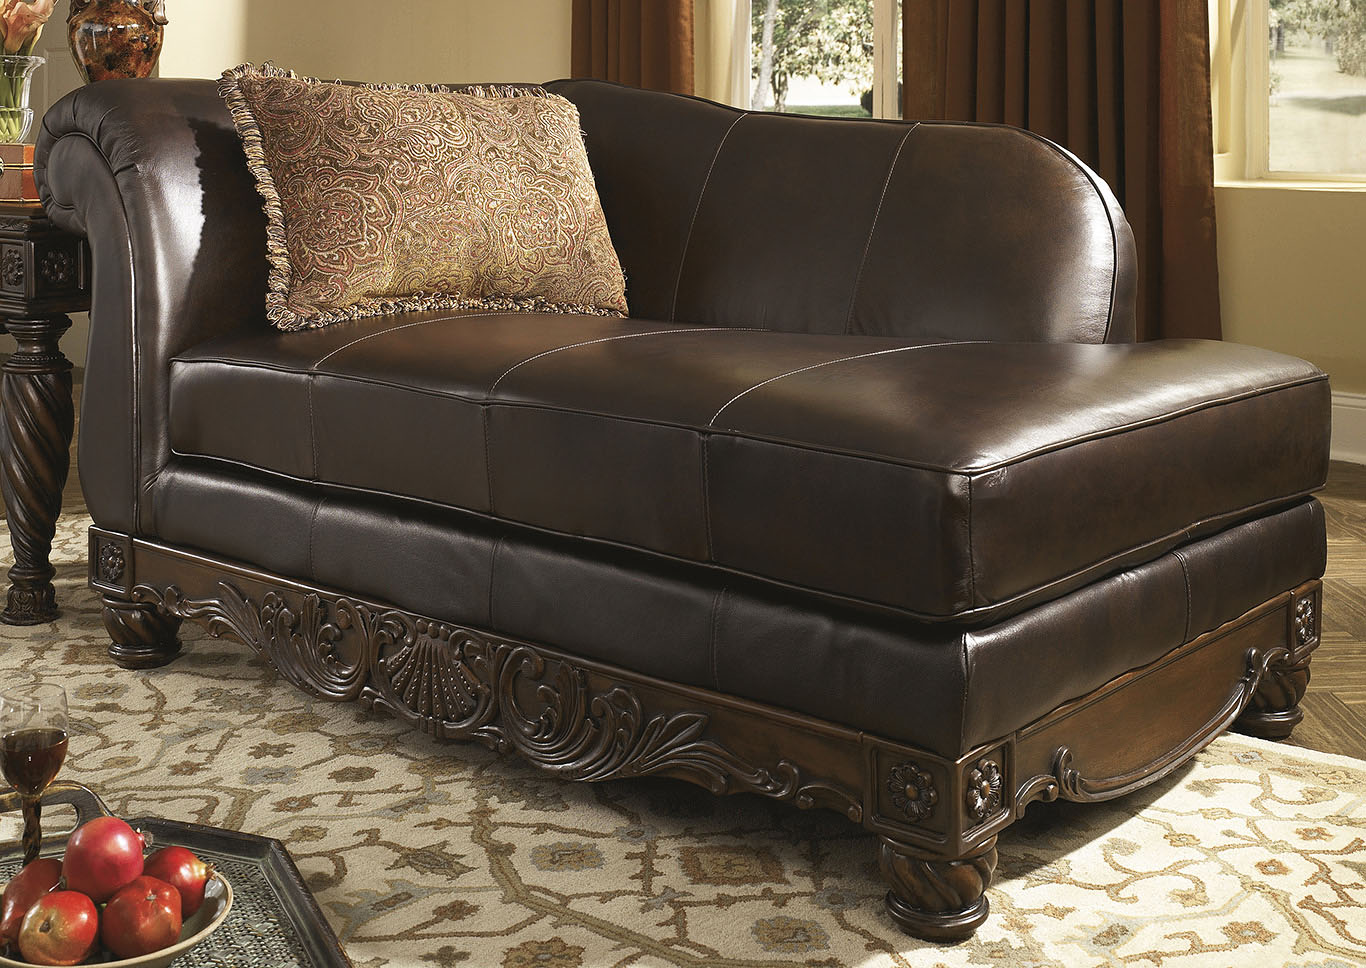 Affordable furniture carpet chicago il north shore for Affordable furniture and carpet